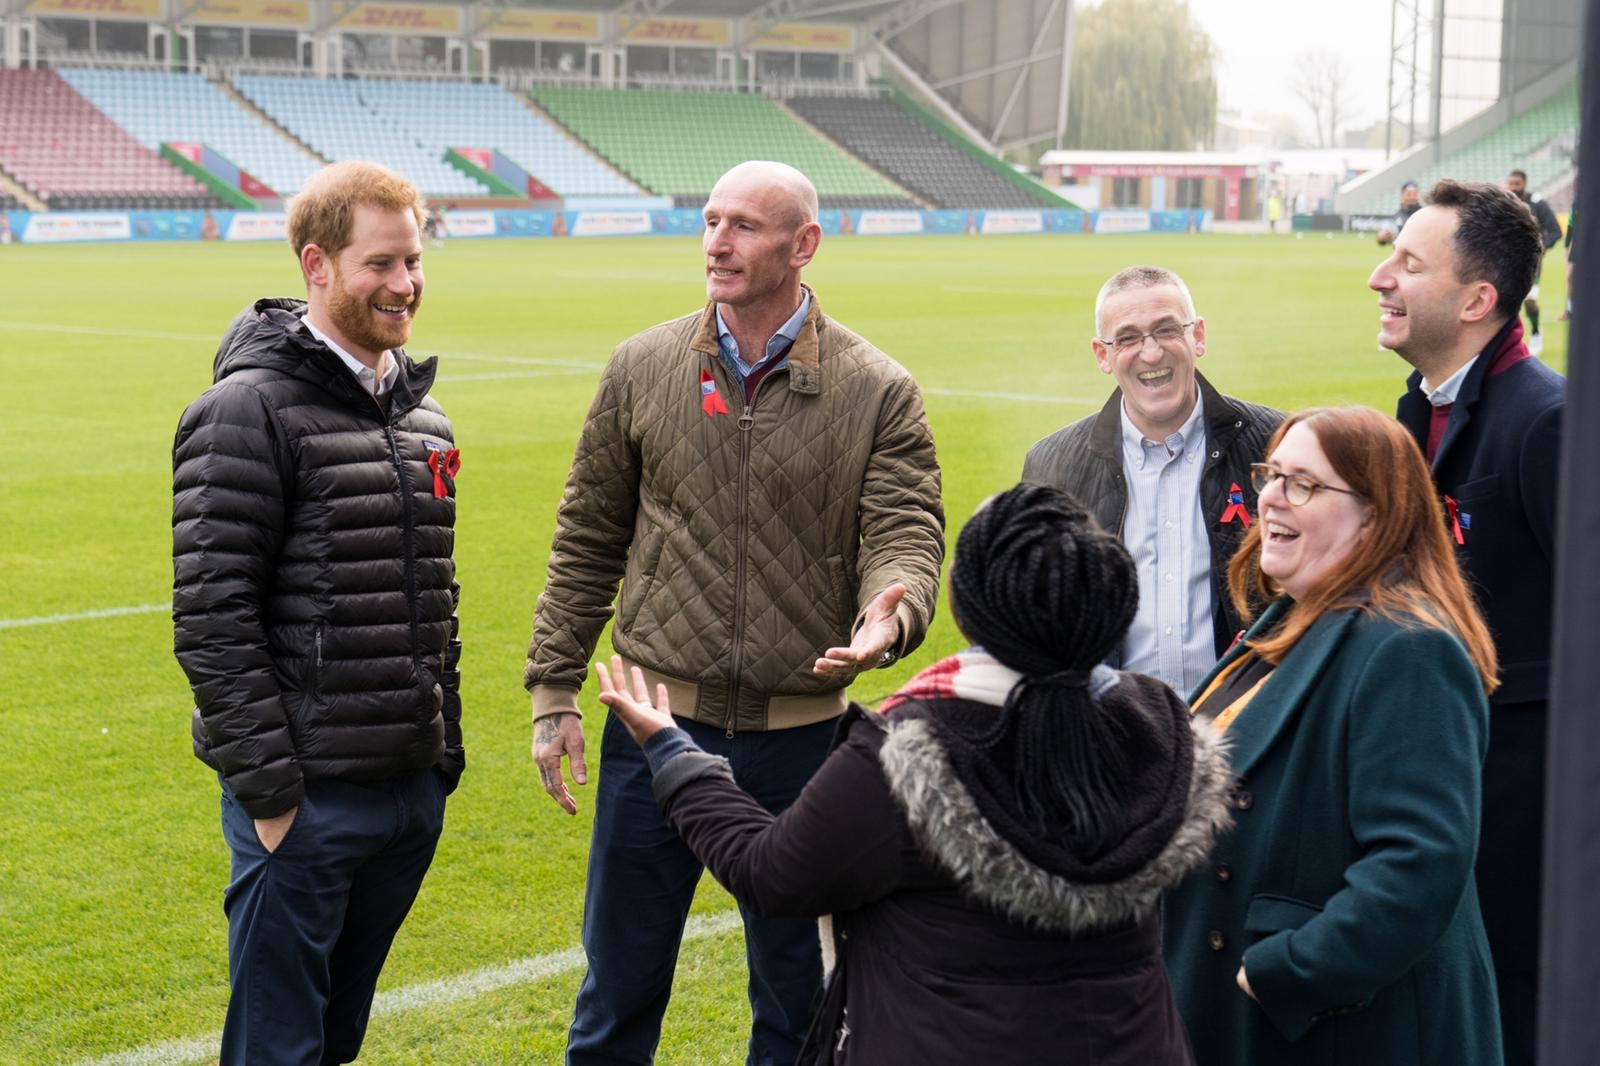 Duke of Sussex, Gareth Thomas, Ian Green at Twickenham